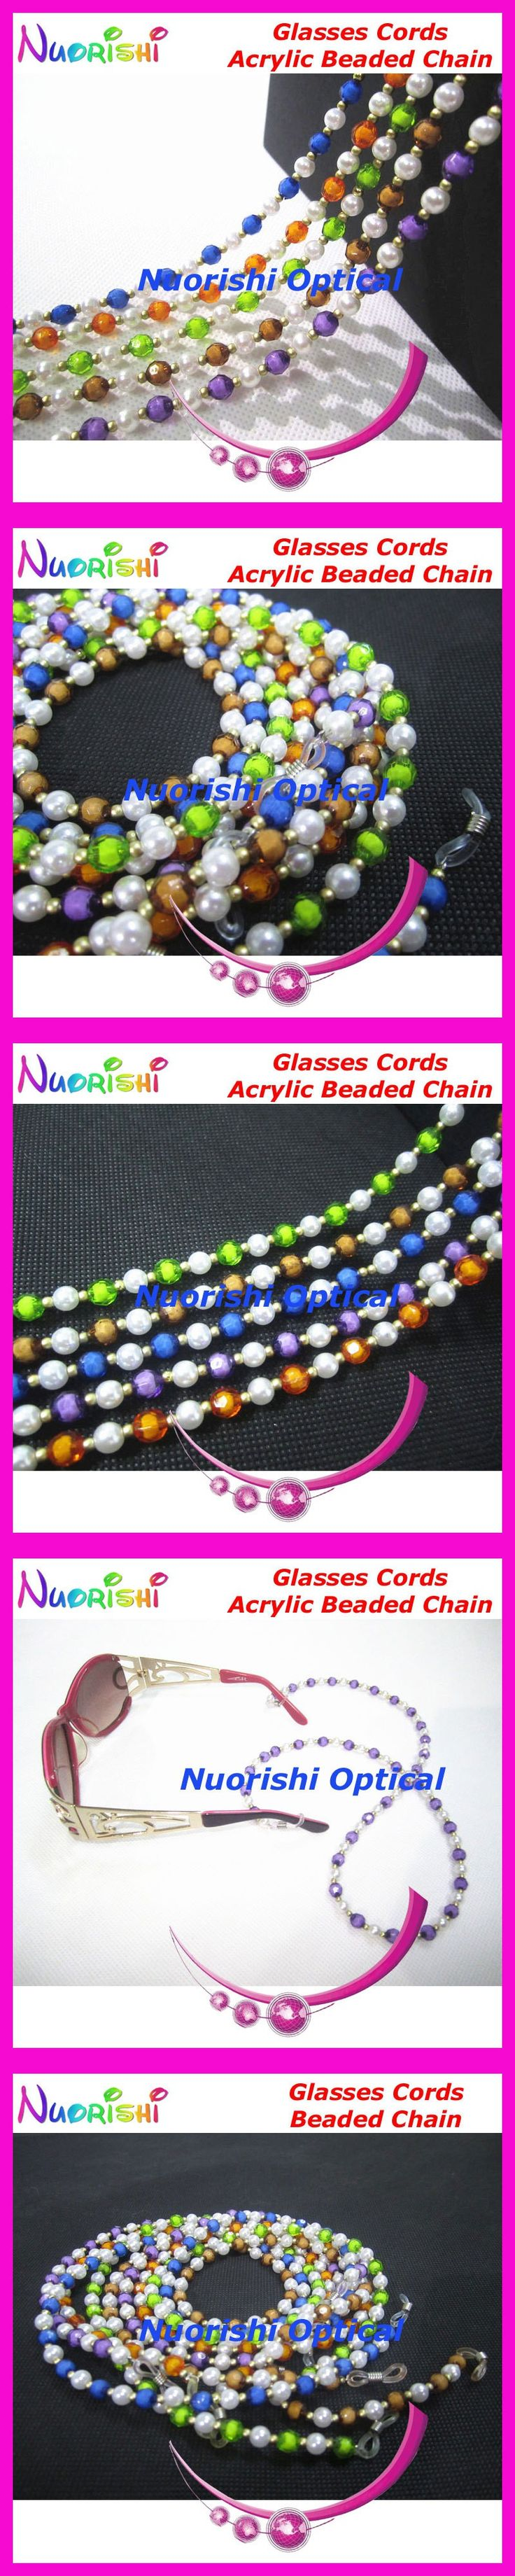 10pcs L804B Color Acrylic Nice Beaded Eyeglasses Sunglasses Eyewear Spectacle Chain Cords Lanyard free shipping $12.8